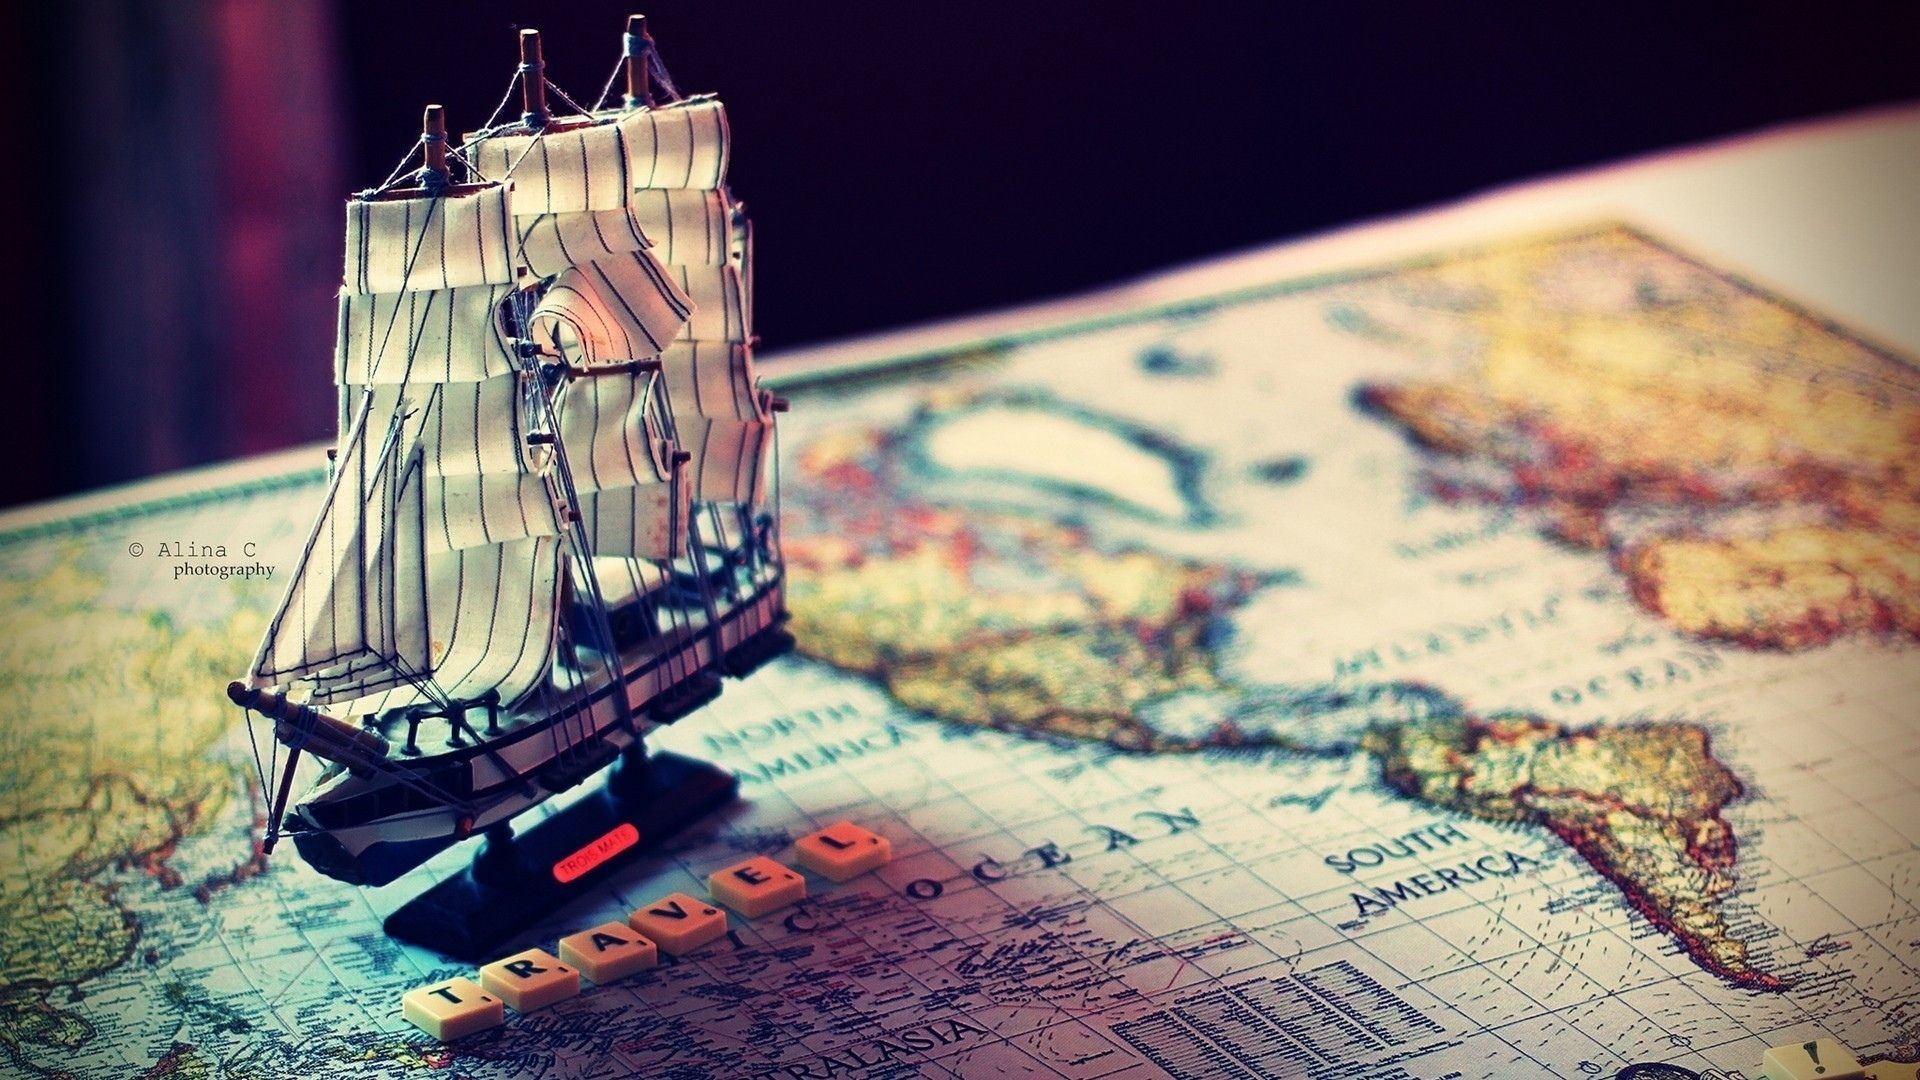 Cool wallpaper hd traveler with ship wallpaper pinterest cool wallpaper hd traveler with ship gumiabroncs Images